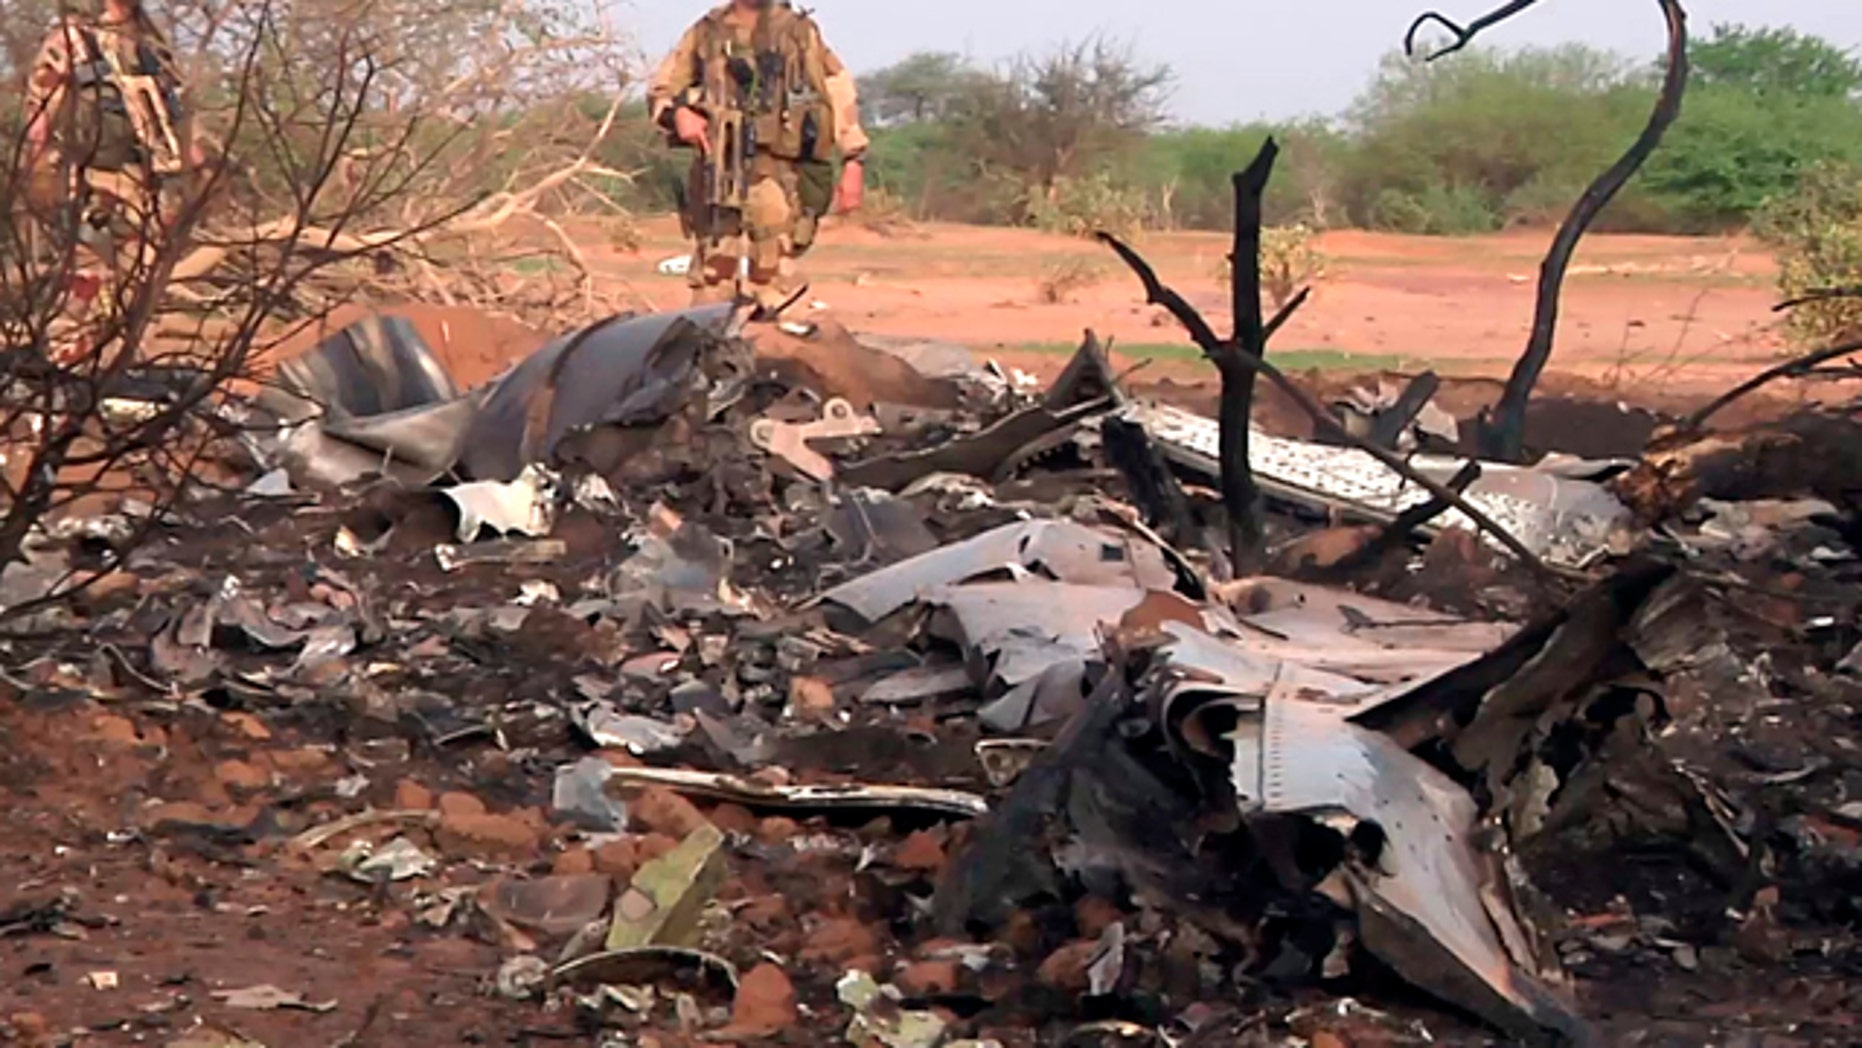 July 25, 2014: This photo provided by the French army shows soldiers at the site of the plane crash in Mali.  (AP Photo/ECPAD)